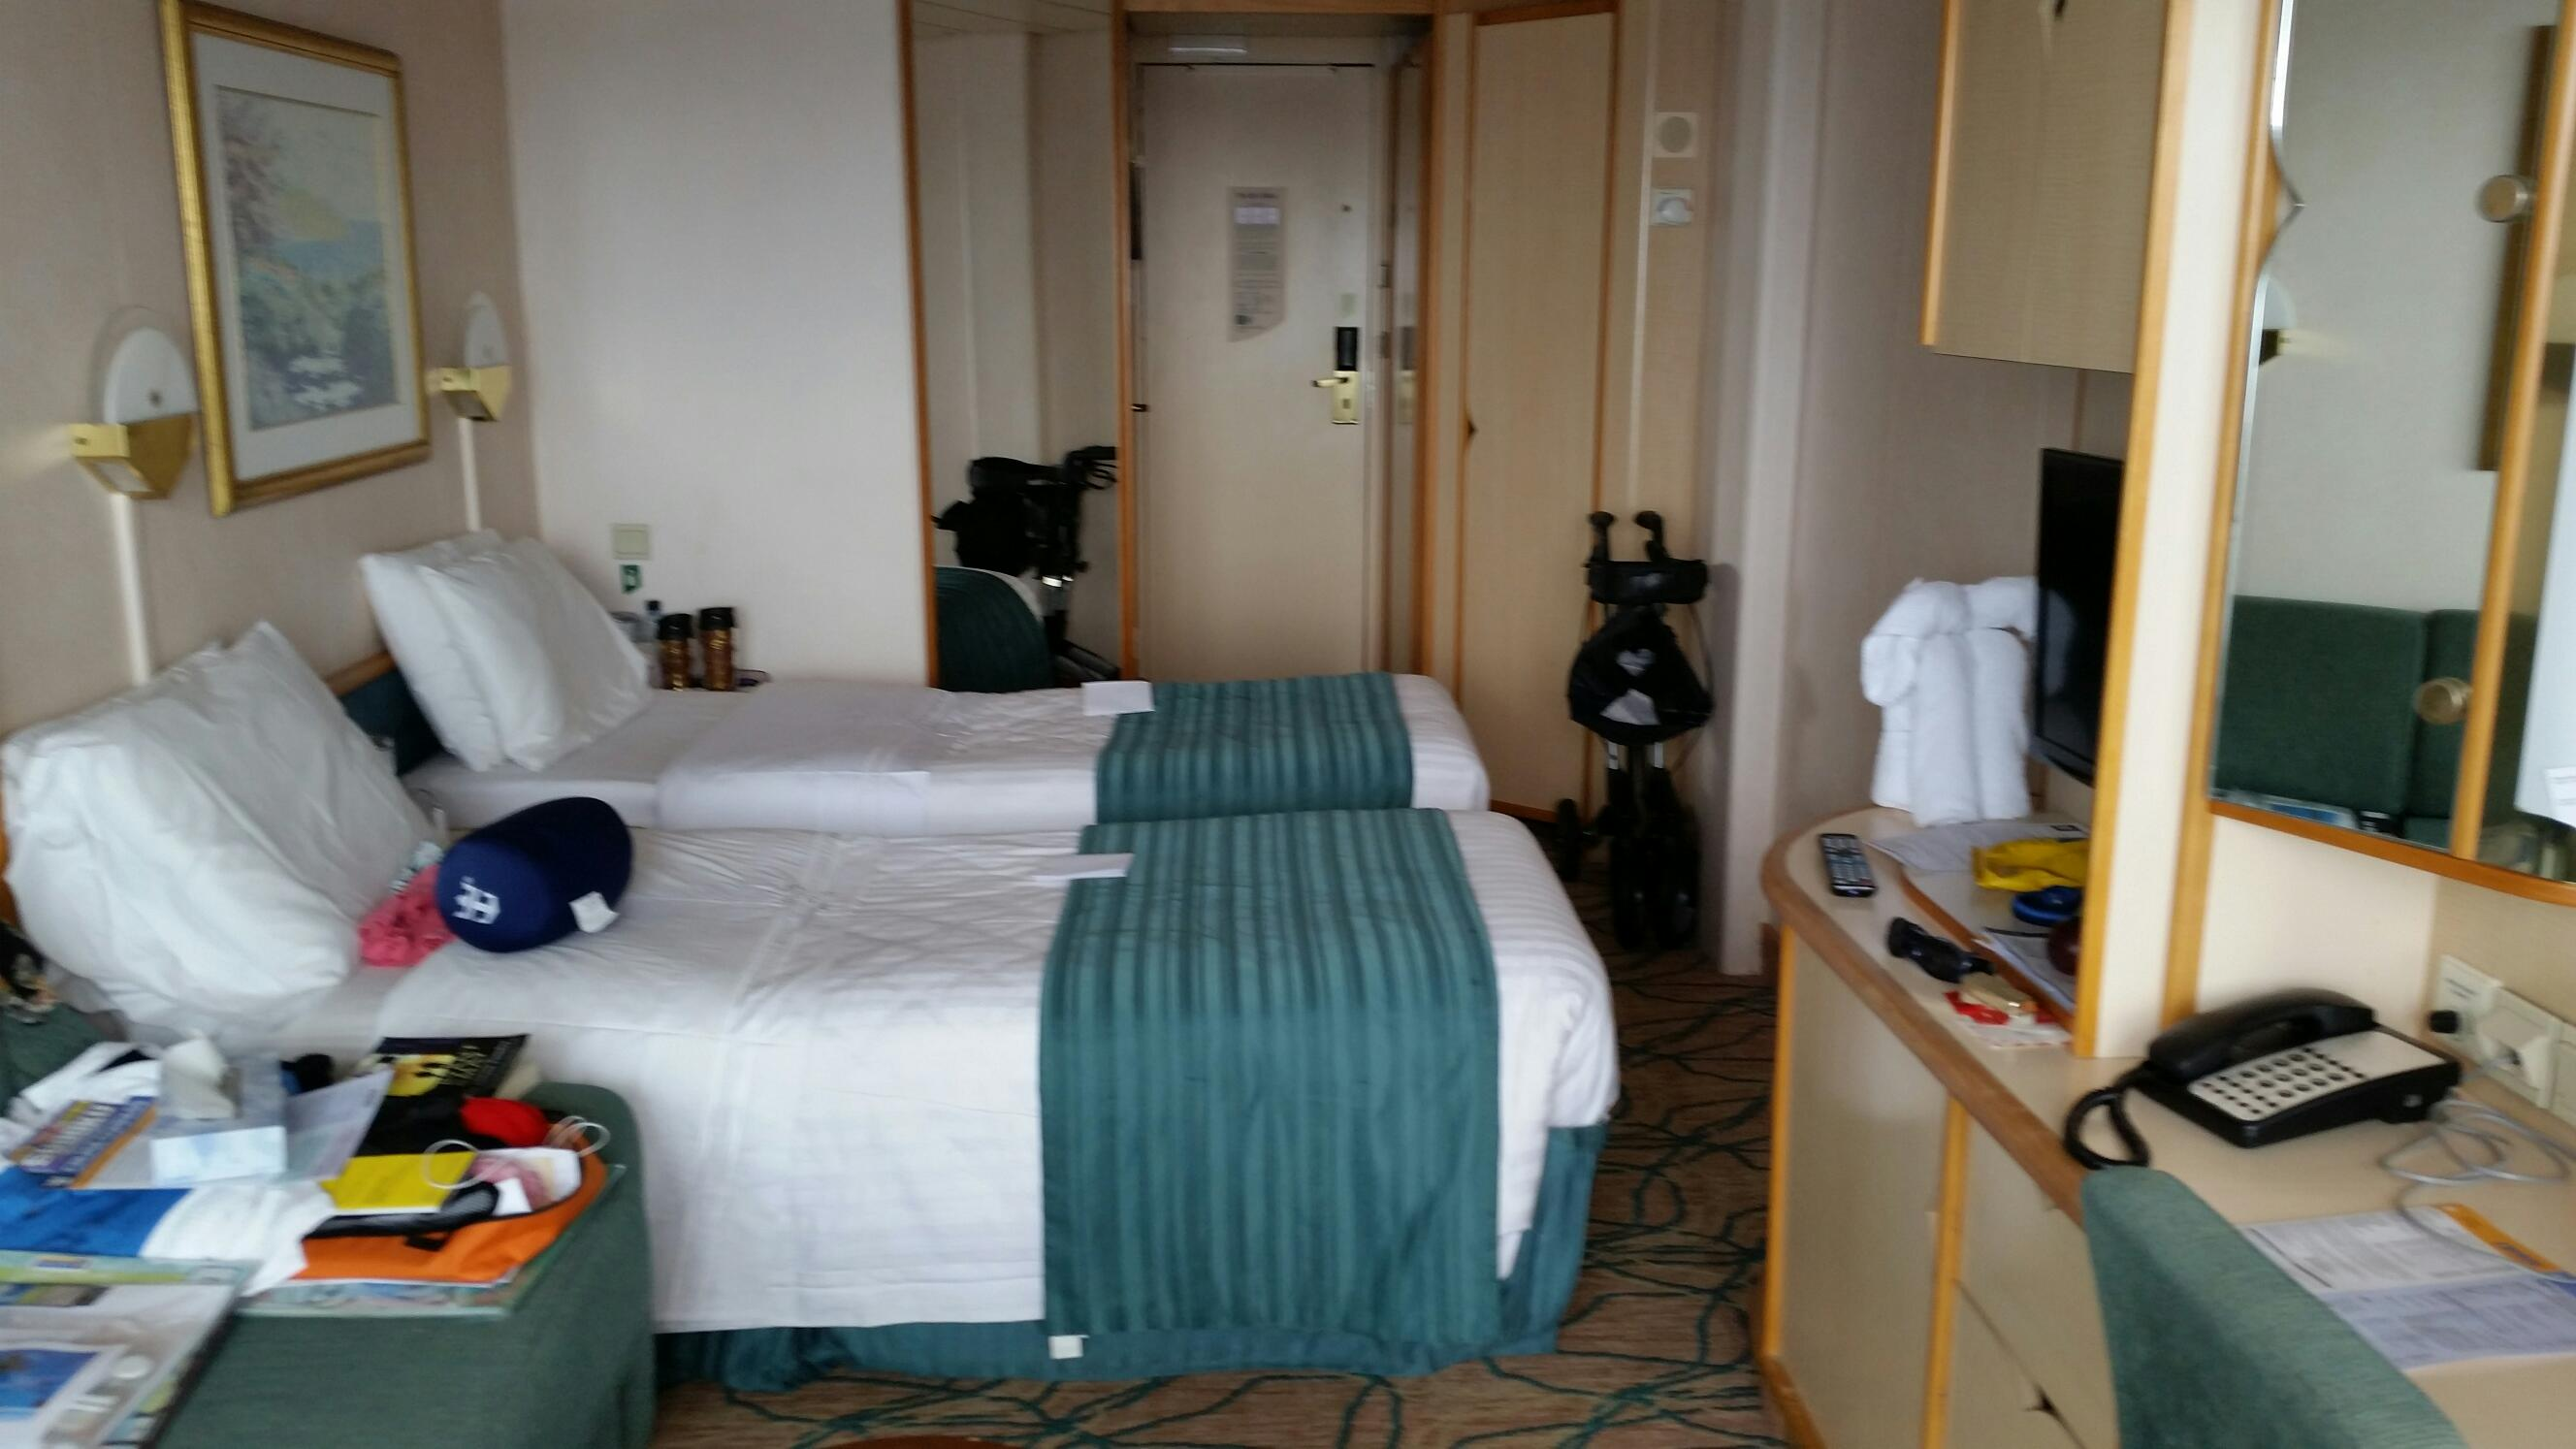 Rhapsody Of The Seas Cruise Ship Reviews And Photos Cruiselinecom - Pictures of rhapsody of the seas cruise ship